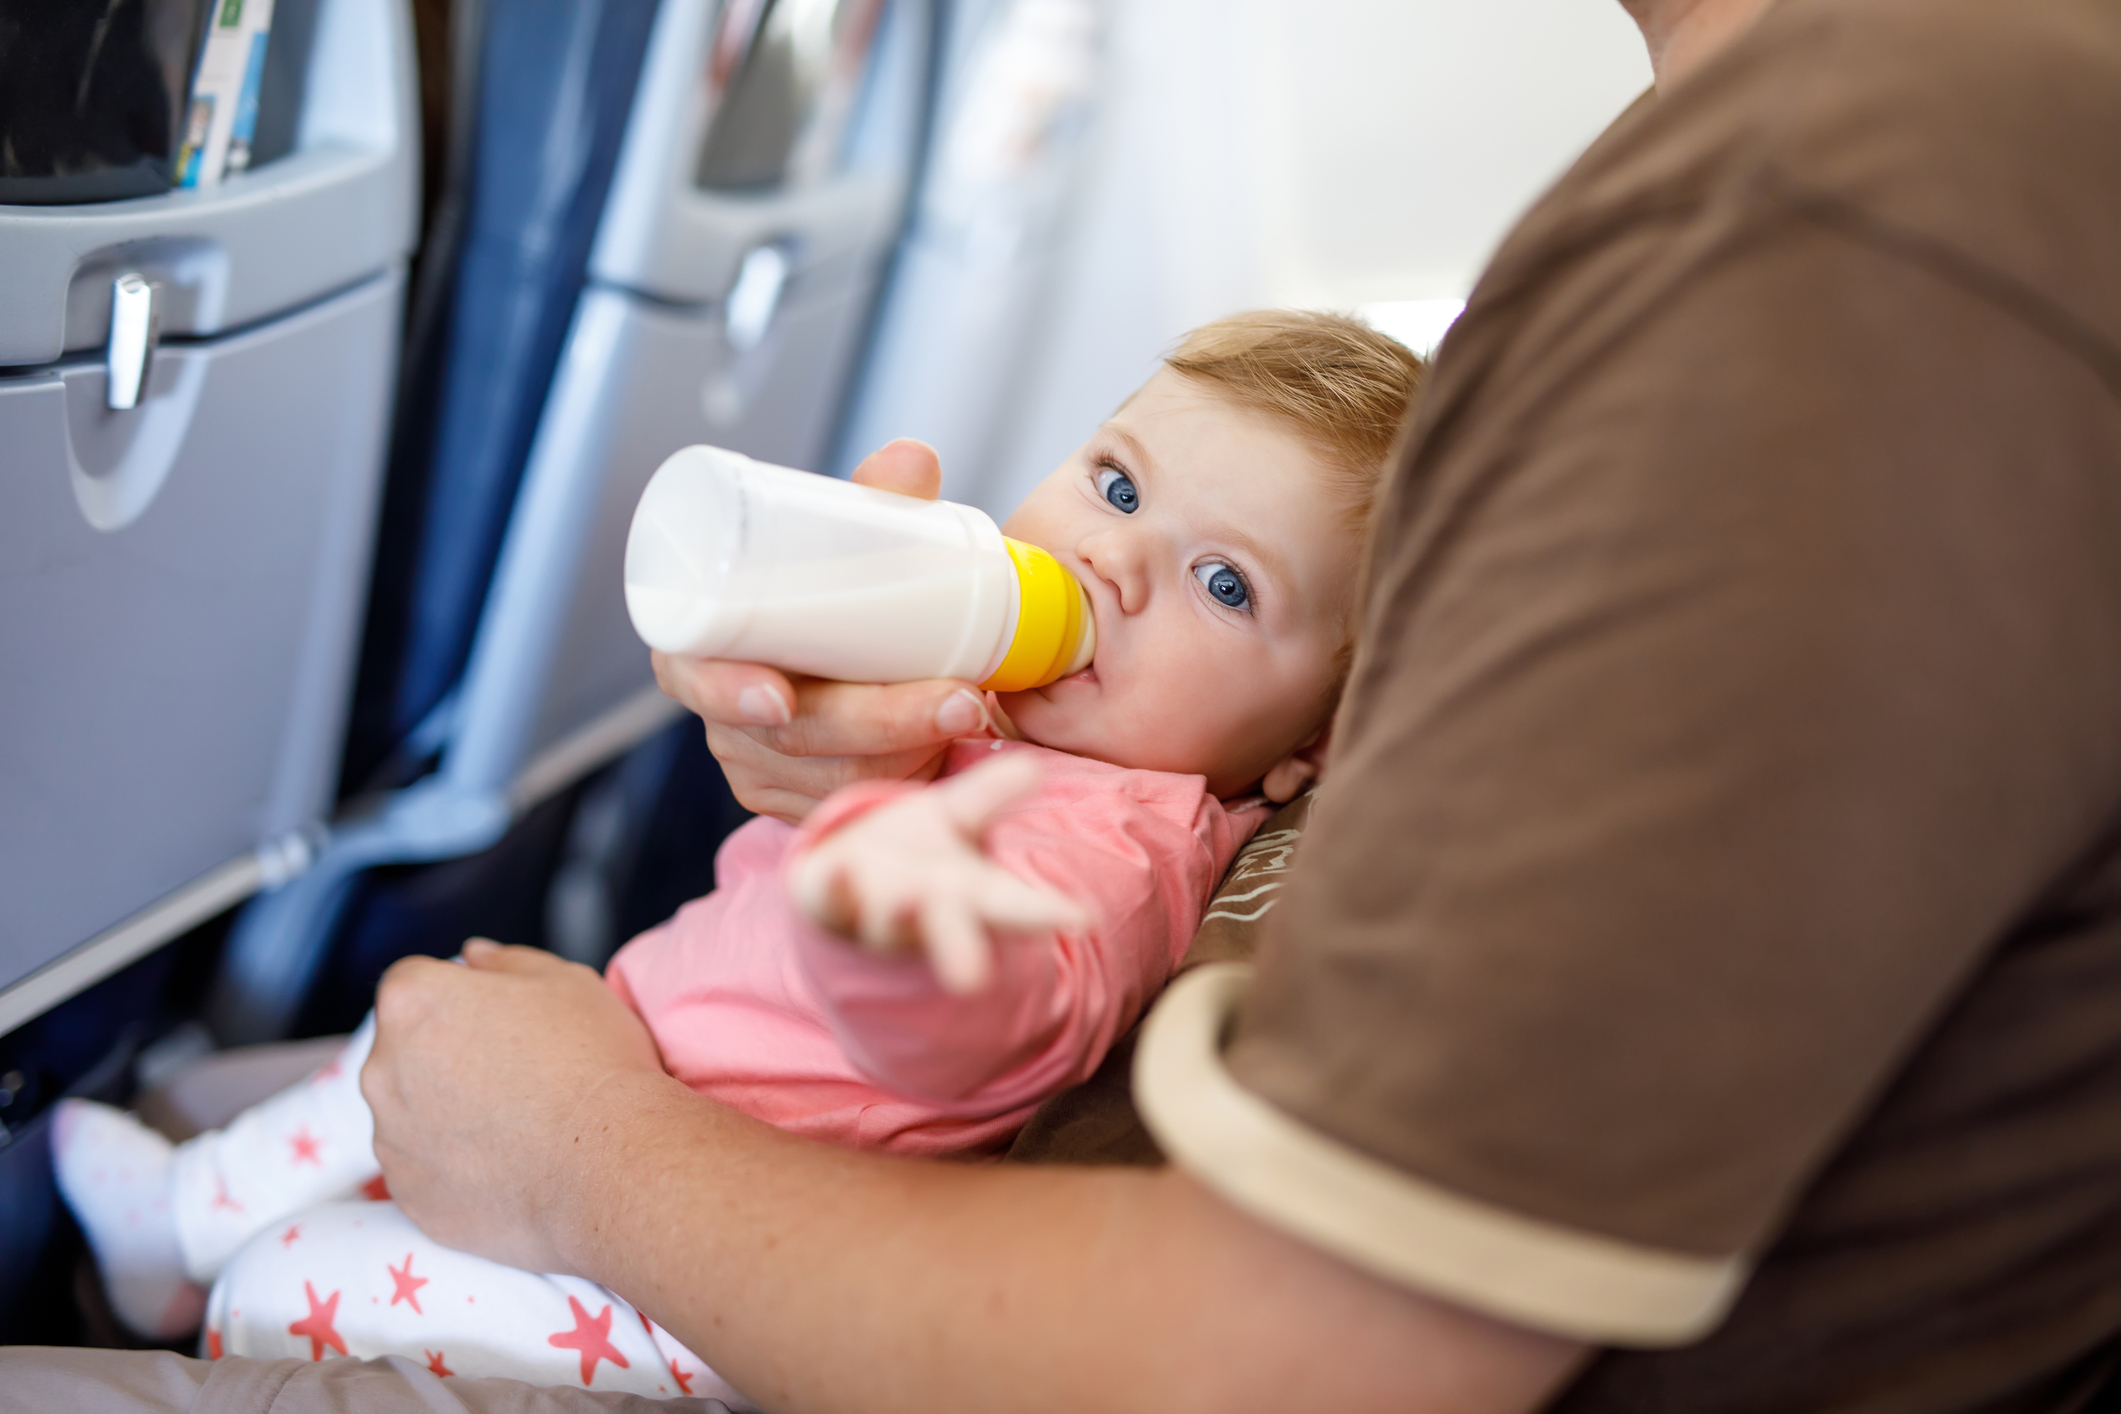 Ten Tips for Flying with a Baby